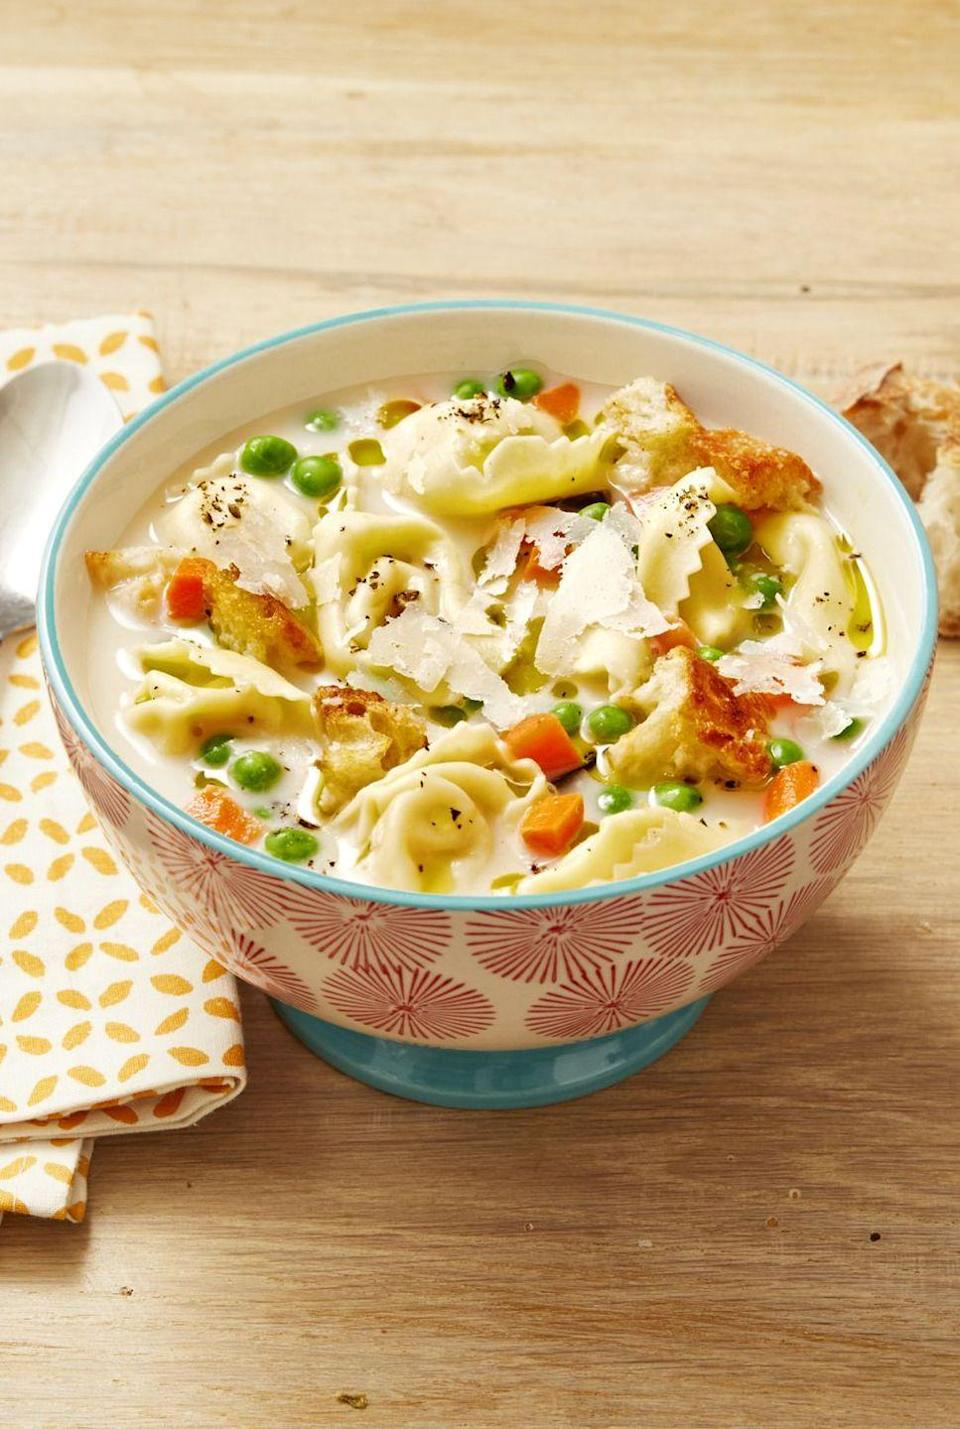 """<p>Rushing to get dinner on the table? This soup will be ready in just 15 minutes—making it the perfect starter <em>or</em> main.</p><p><strong><a href=""""https://www.thepioneerwoman.com/food-cooking/recipes/a32494718/creamy-tortellini-soup-recipe-idea/"""" rel=""""nofollow noopener"""" target=""""_blank"""" data-ylk=""""slk:Get the recipe"""" class=""""link rapid-noclick-resp"""">Get the recipe</a>.</strong></p><p><strong><a class=""""link rapid-noclick-resp"""" href=""""https://go.redirectingat.com?id=74968X1596630&url=https%3A%2F%2Fwww.walmart.com%2Fbrowse%2Fhome%2Fthe-pioneer-woman-dishes%2F4044_623679_639999_7373615&sref=https%3A%2F%2Fwww.thepioneerwoman.com%2Ffood-cooking%2Fmeals-menus%2Fg35589850%2Fmothers-day-dinner-ideas%2F"""" rel=""""nofollow noopener"""" target=""""_blank"""" data-ylk=""""slk:SHOP BOWLS"""">SHOP BOWLS</a></strong></p>"""